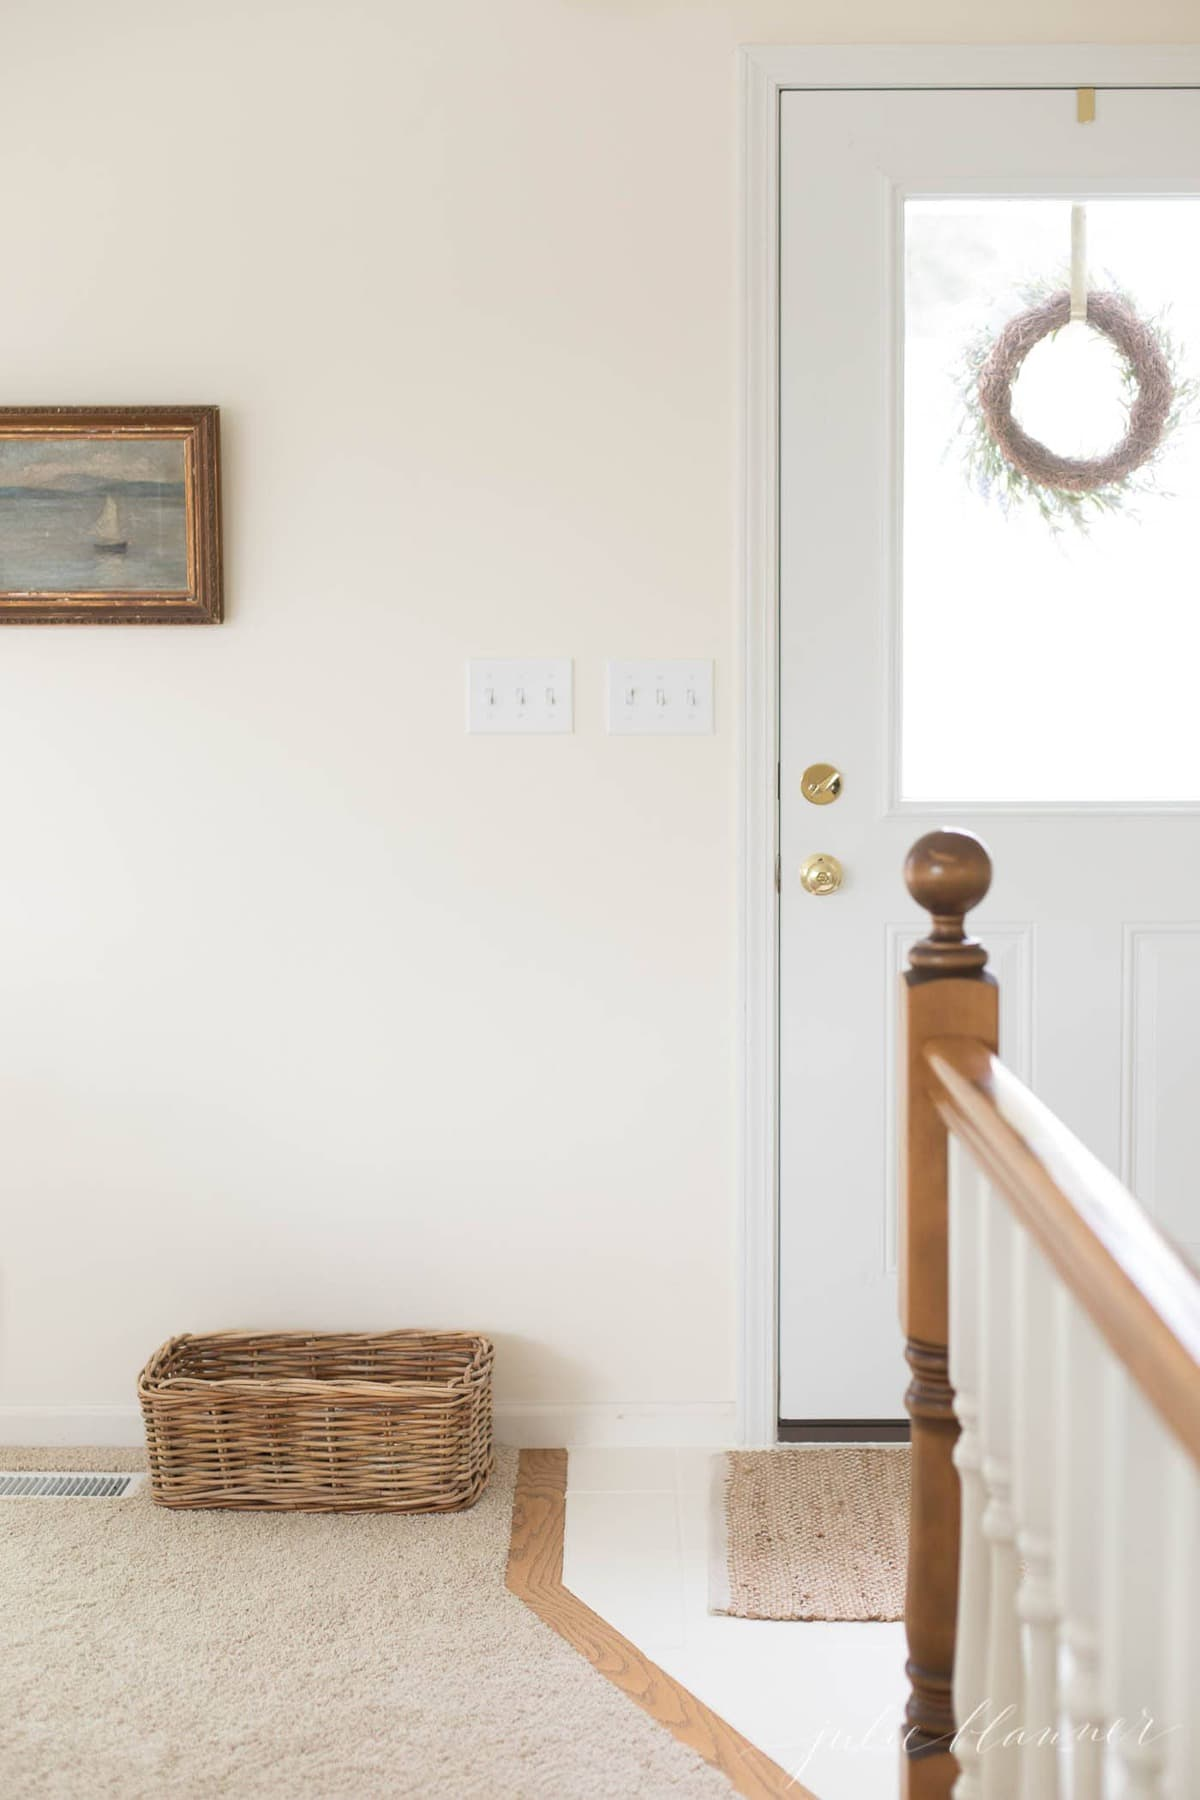 A cream colored entryway with white tile and white trim.